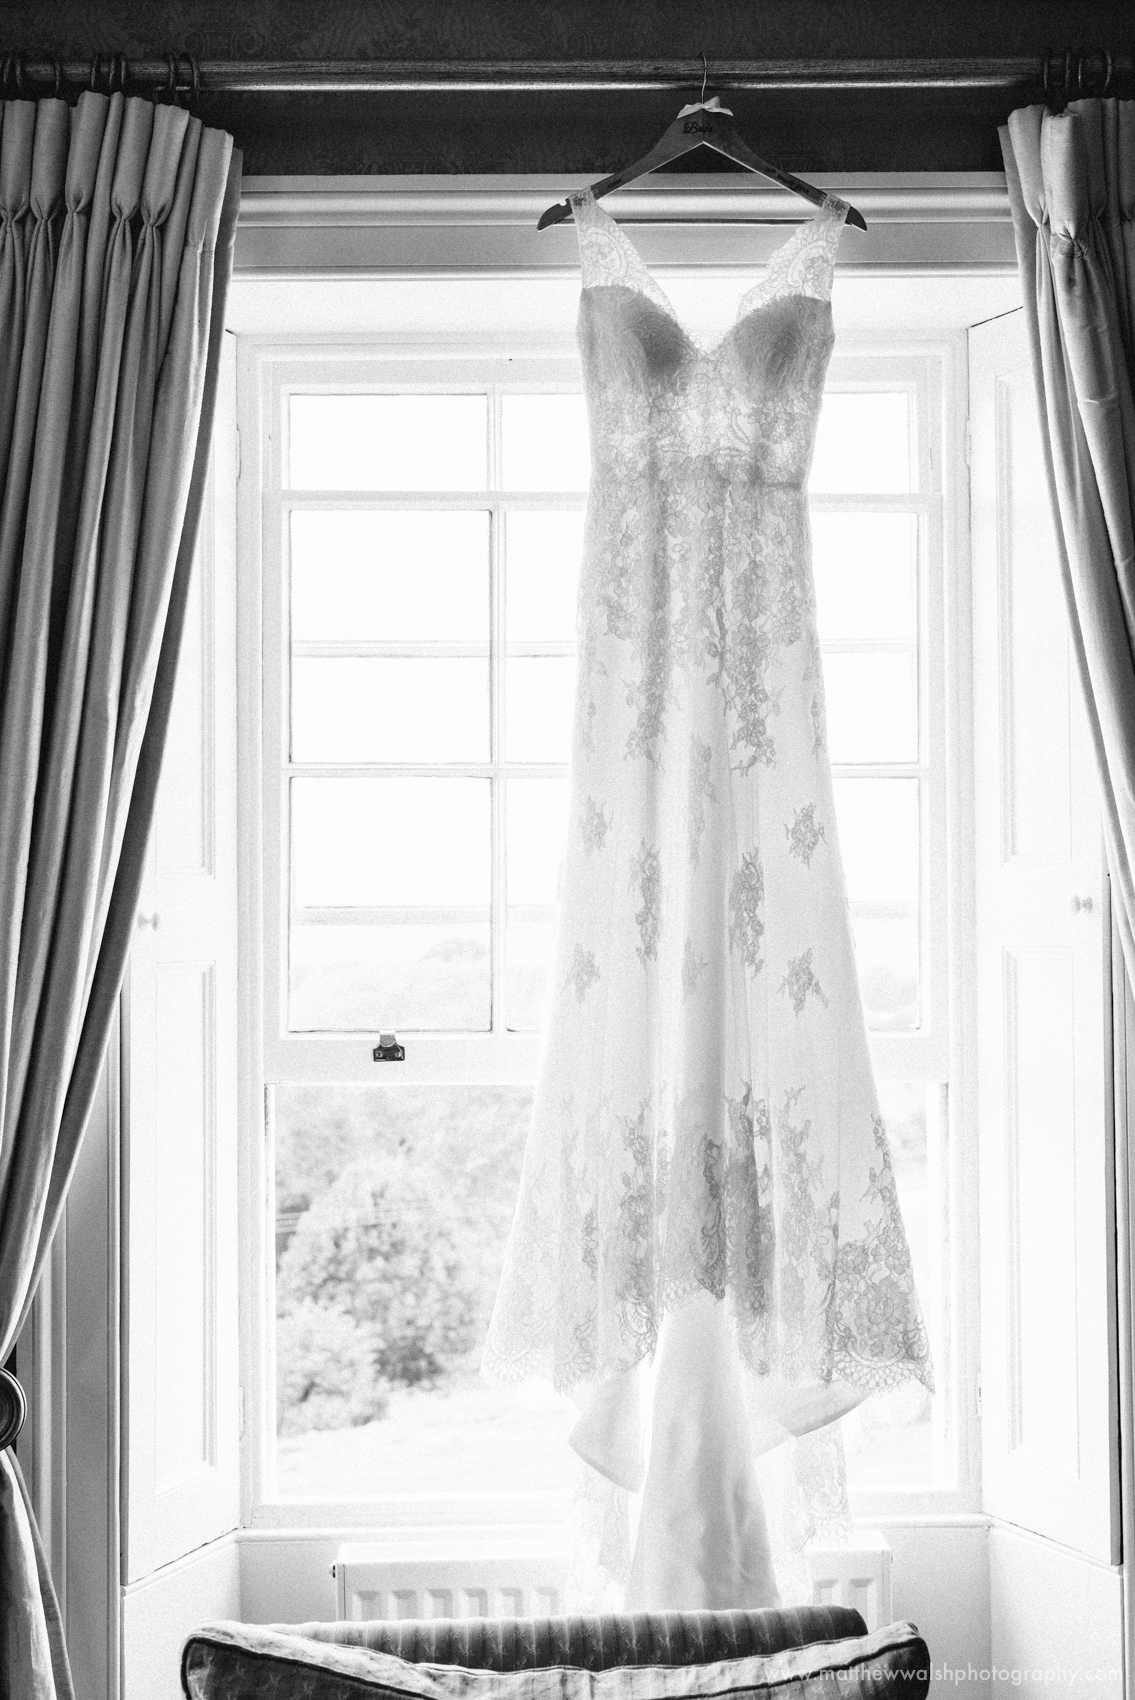 The beautiful and elegant wedding dress hanging up un the window